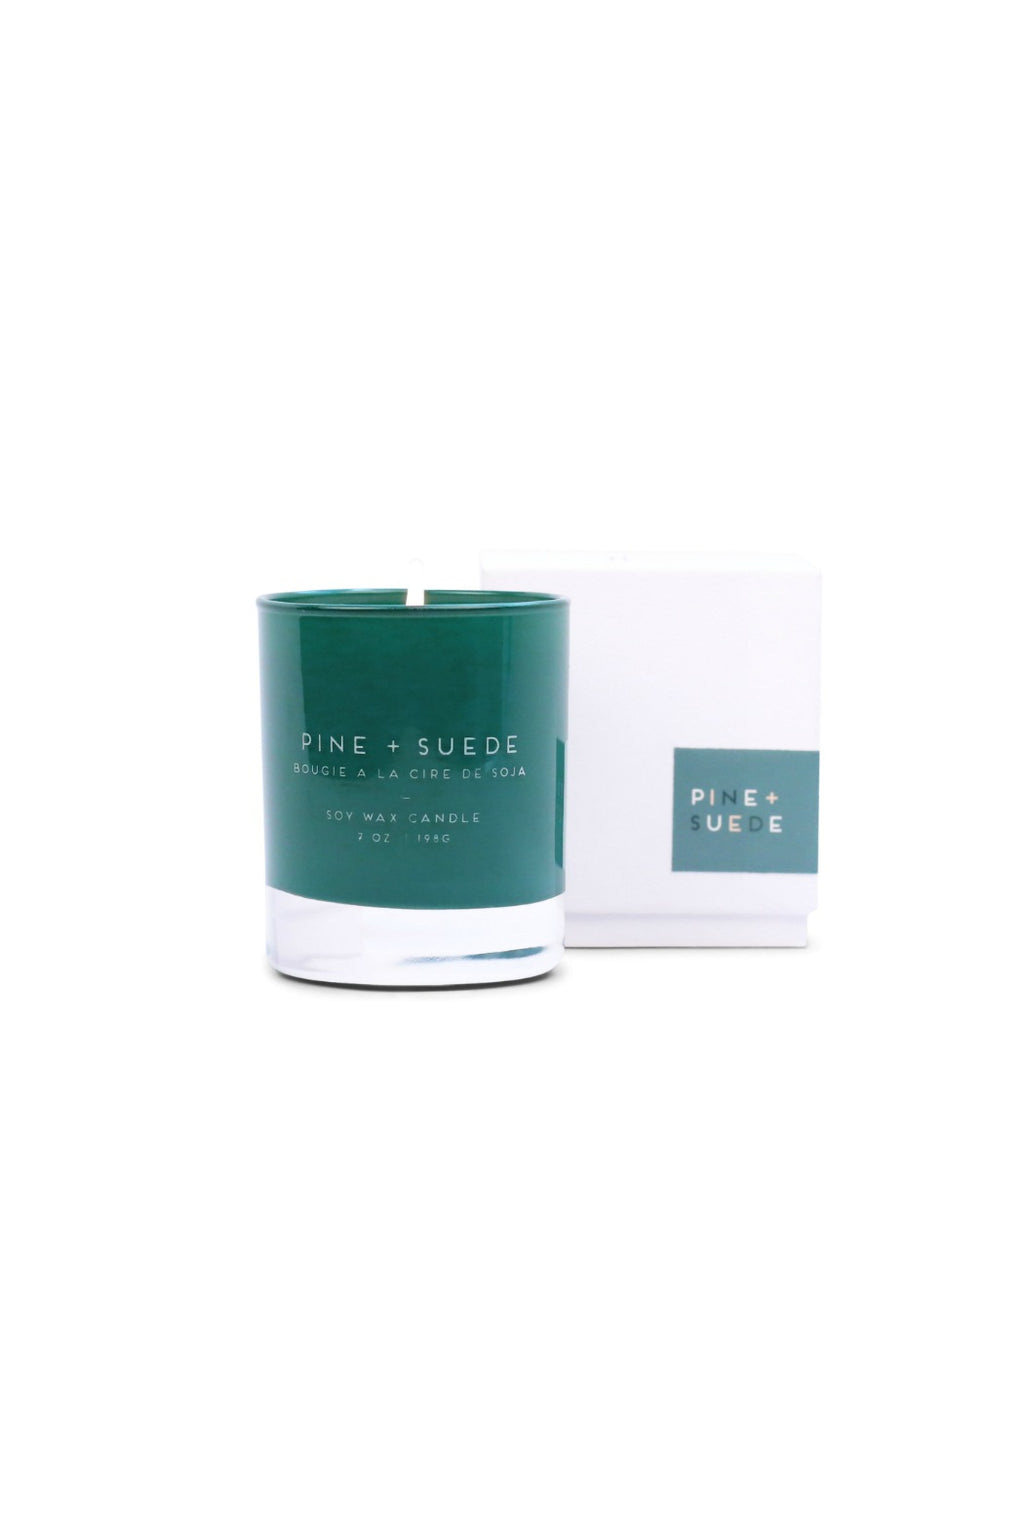 Paddywax Statement Collection Candle in Pine & Suede